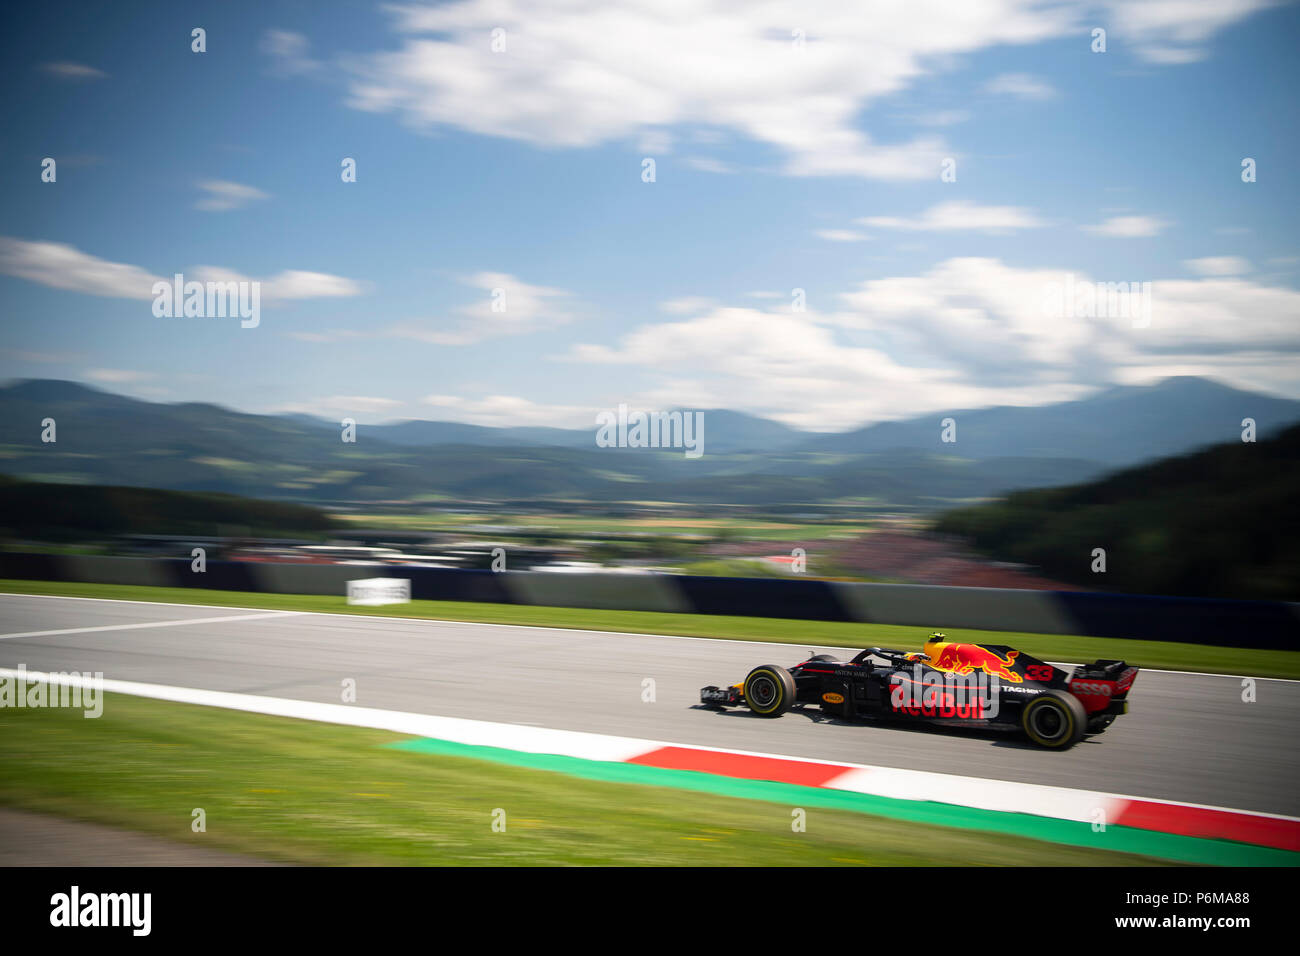 Red Bull Ring, Spielberg, Russia. 1st Jul, 2018. Red Bull Racing's Dutch driver Max Verstappen competes during Austrian Formula 1 Grand Prix race at the Red Bull Ring, in Spielberg, Austria on July 1, 2018. Credit: Jure Makovec/Alamy Live News - Stock Image